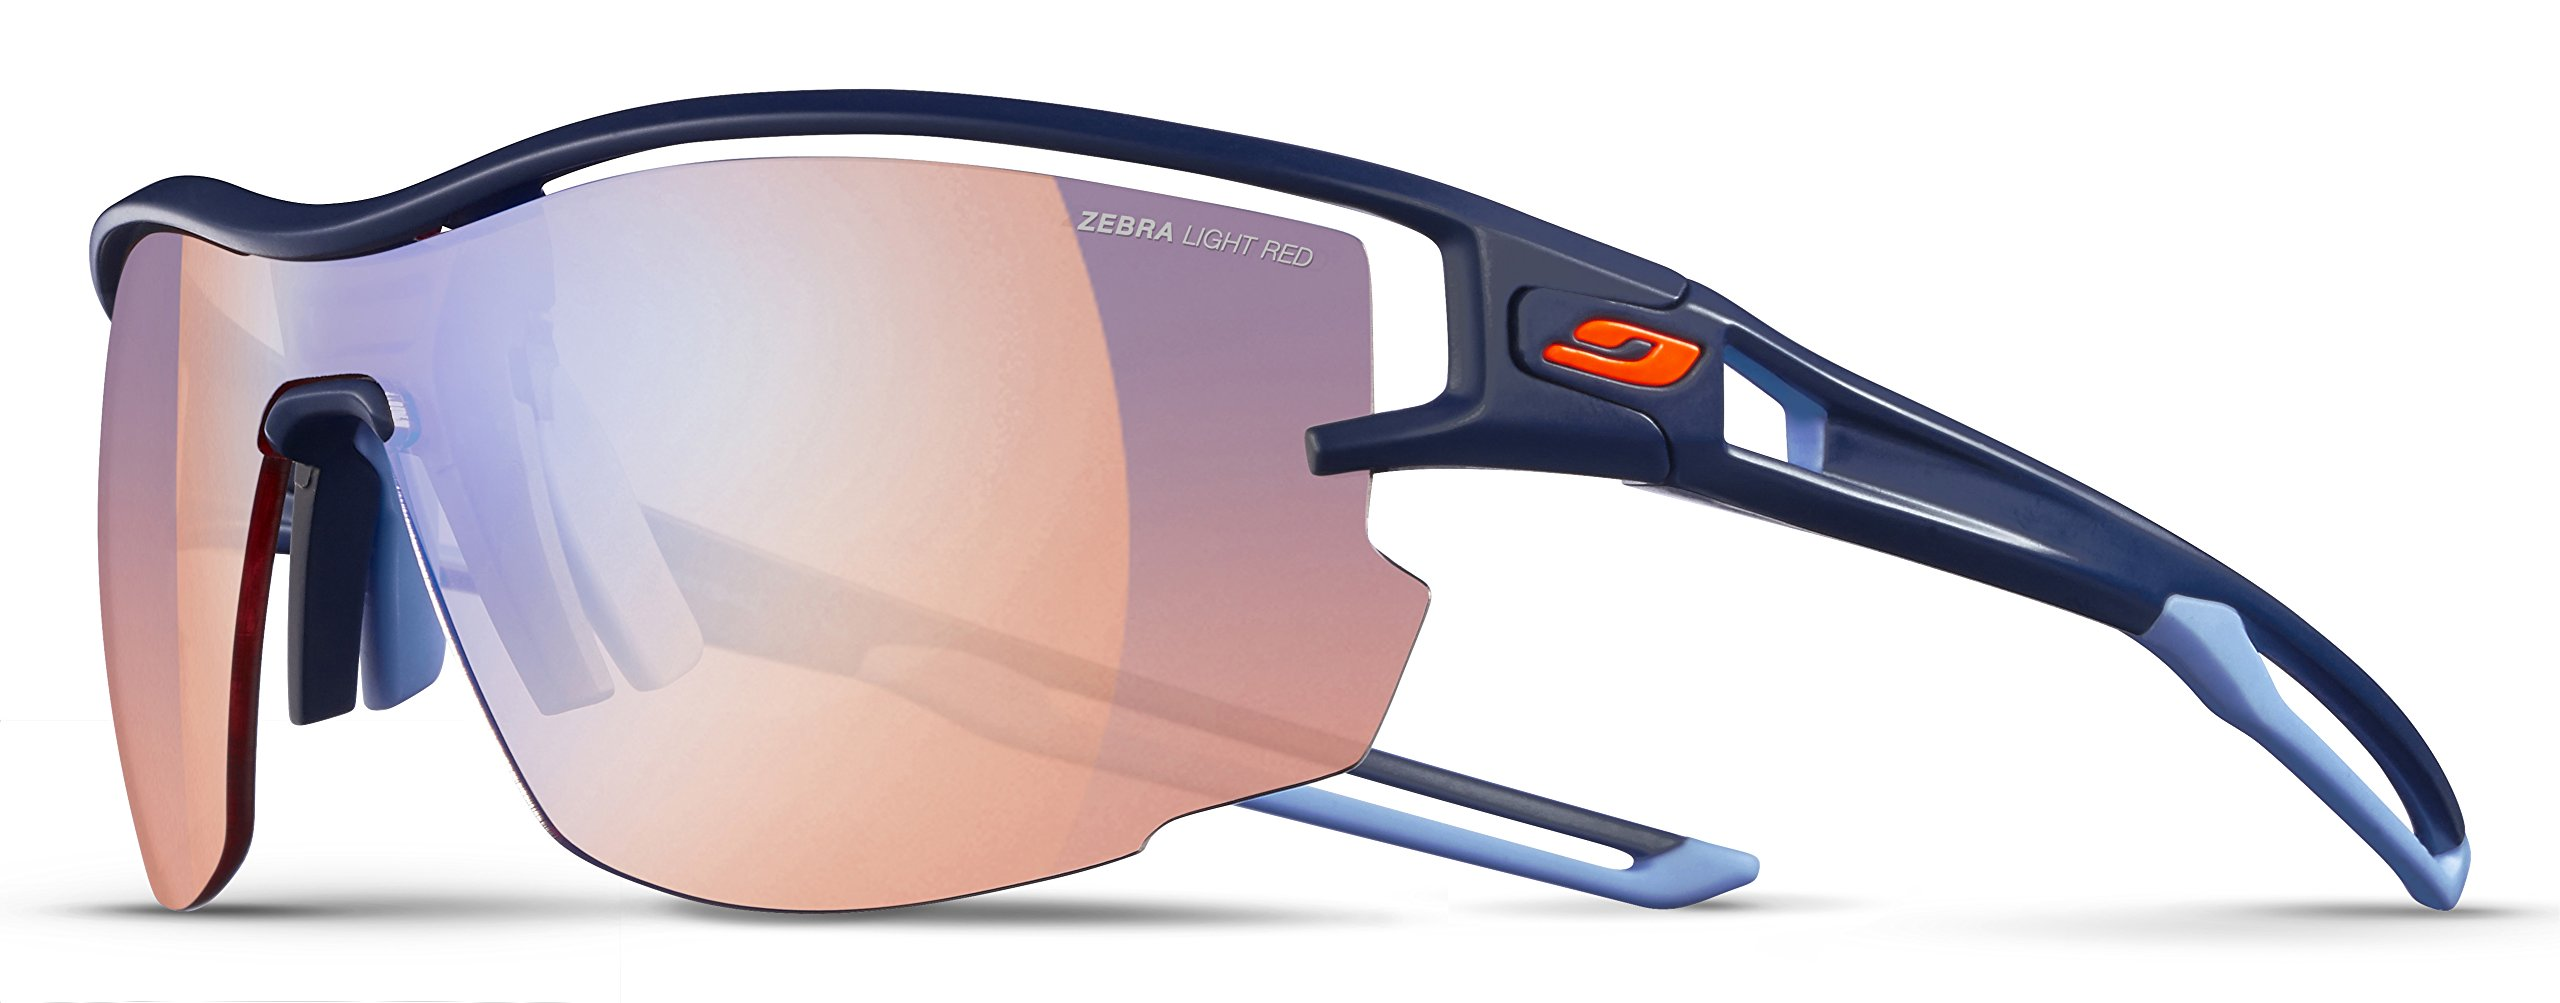 Julbo Aero Performance Sunglasses - REACTIV Zebra Light Red - Dark Blue/Dark Blue